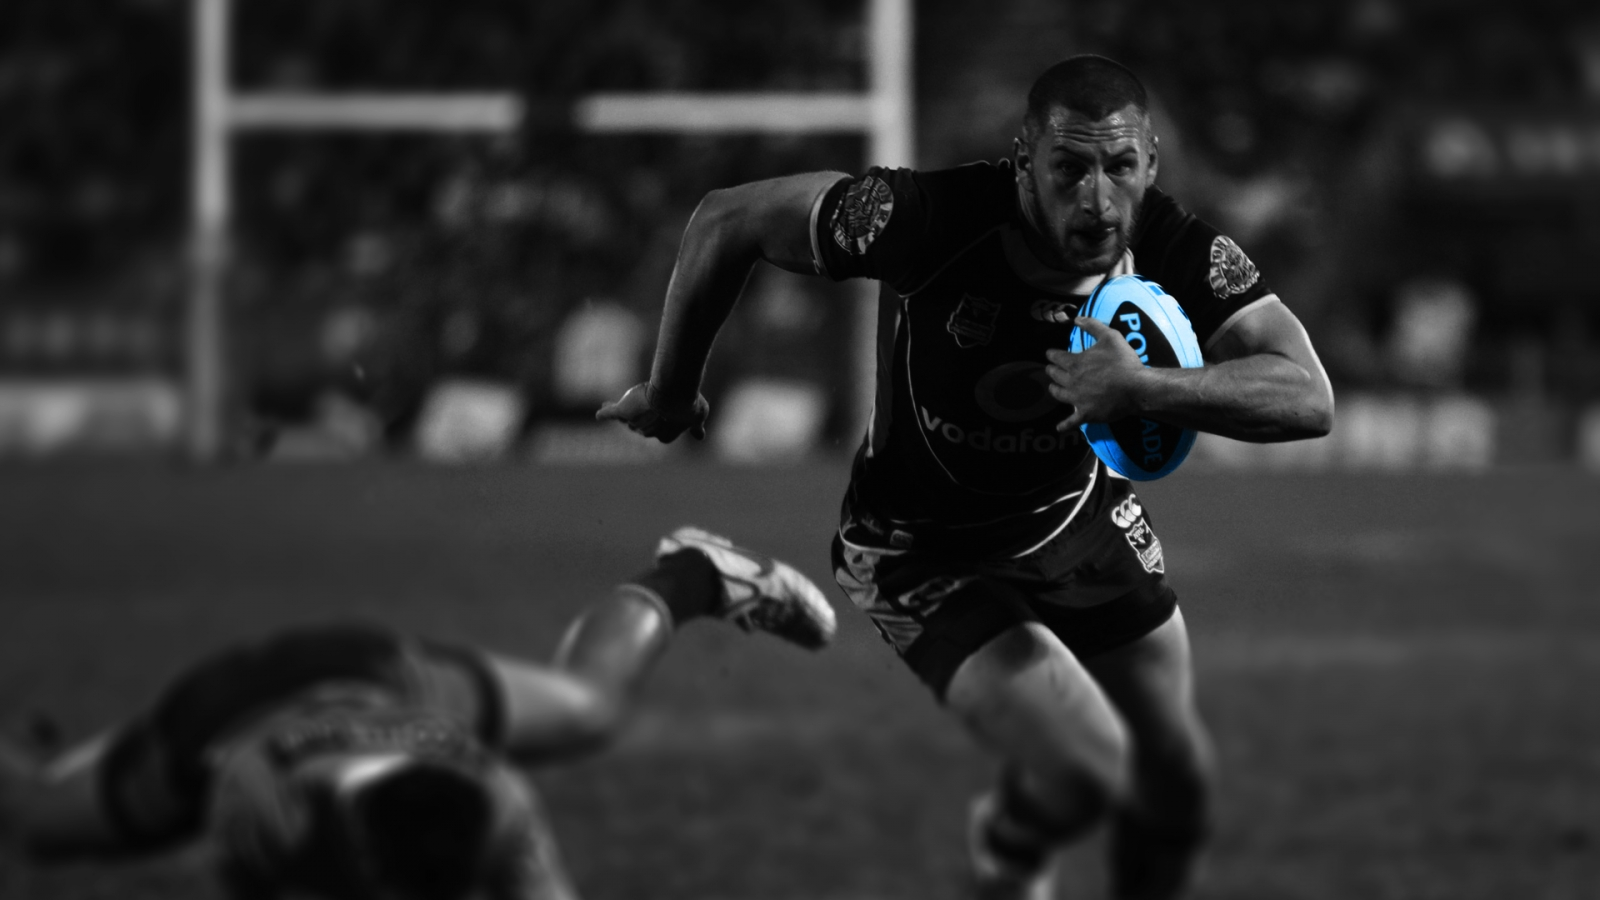 I Love Rugby Wallpapers All Black Rugby...